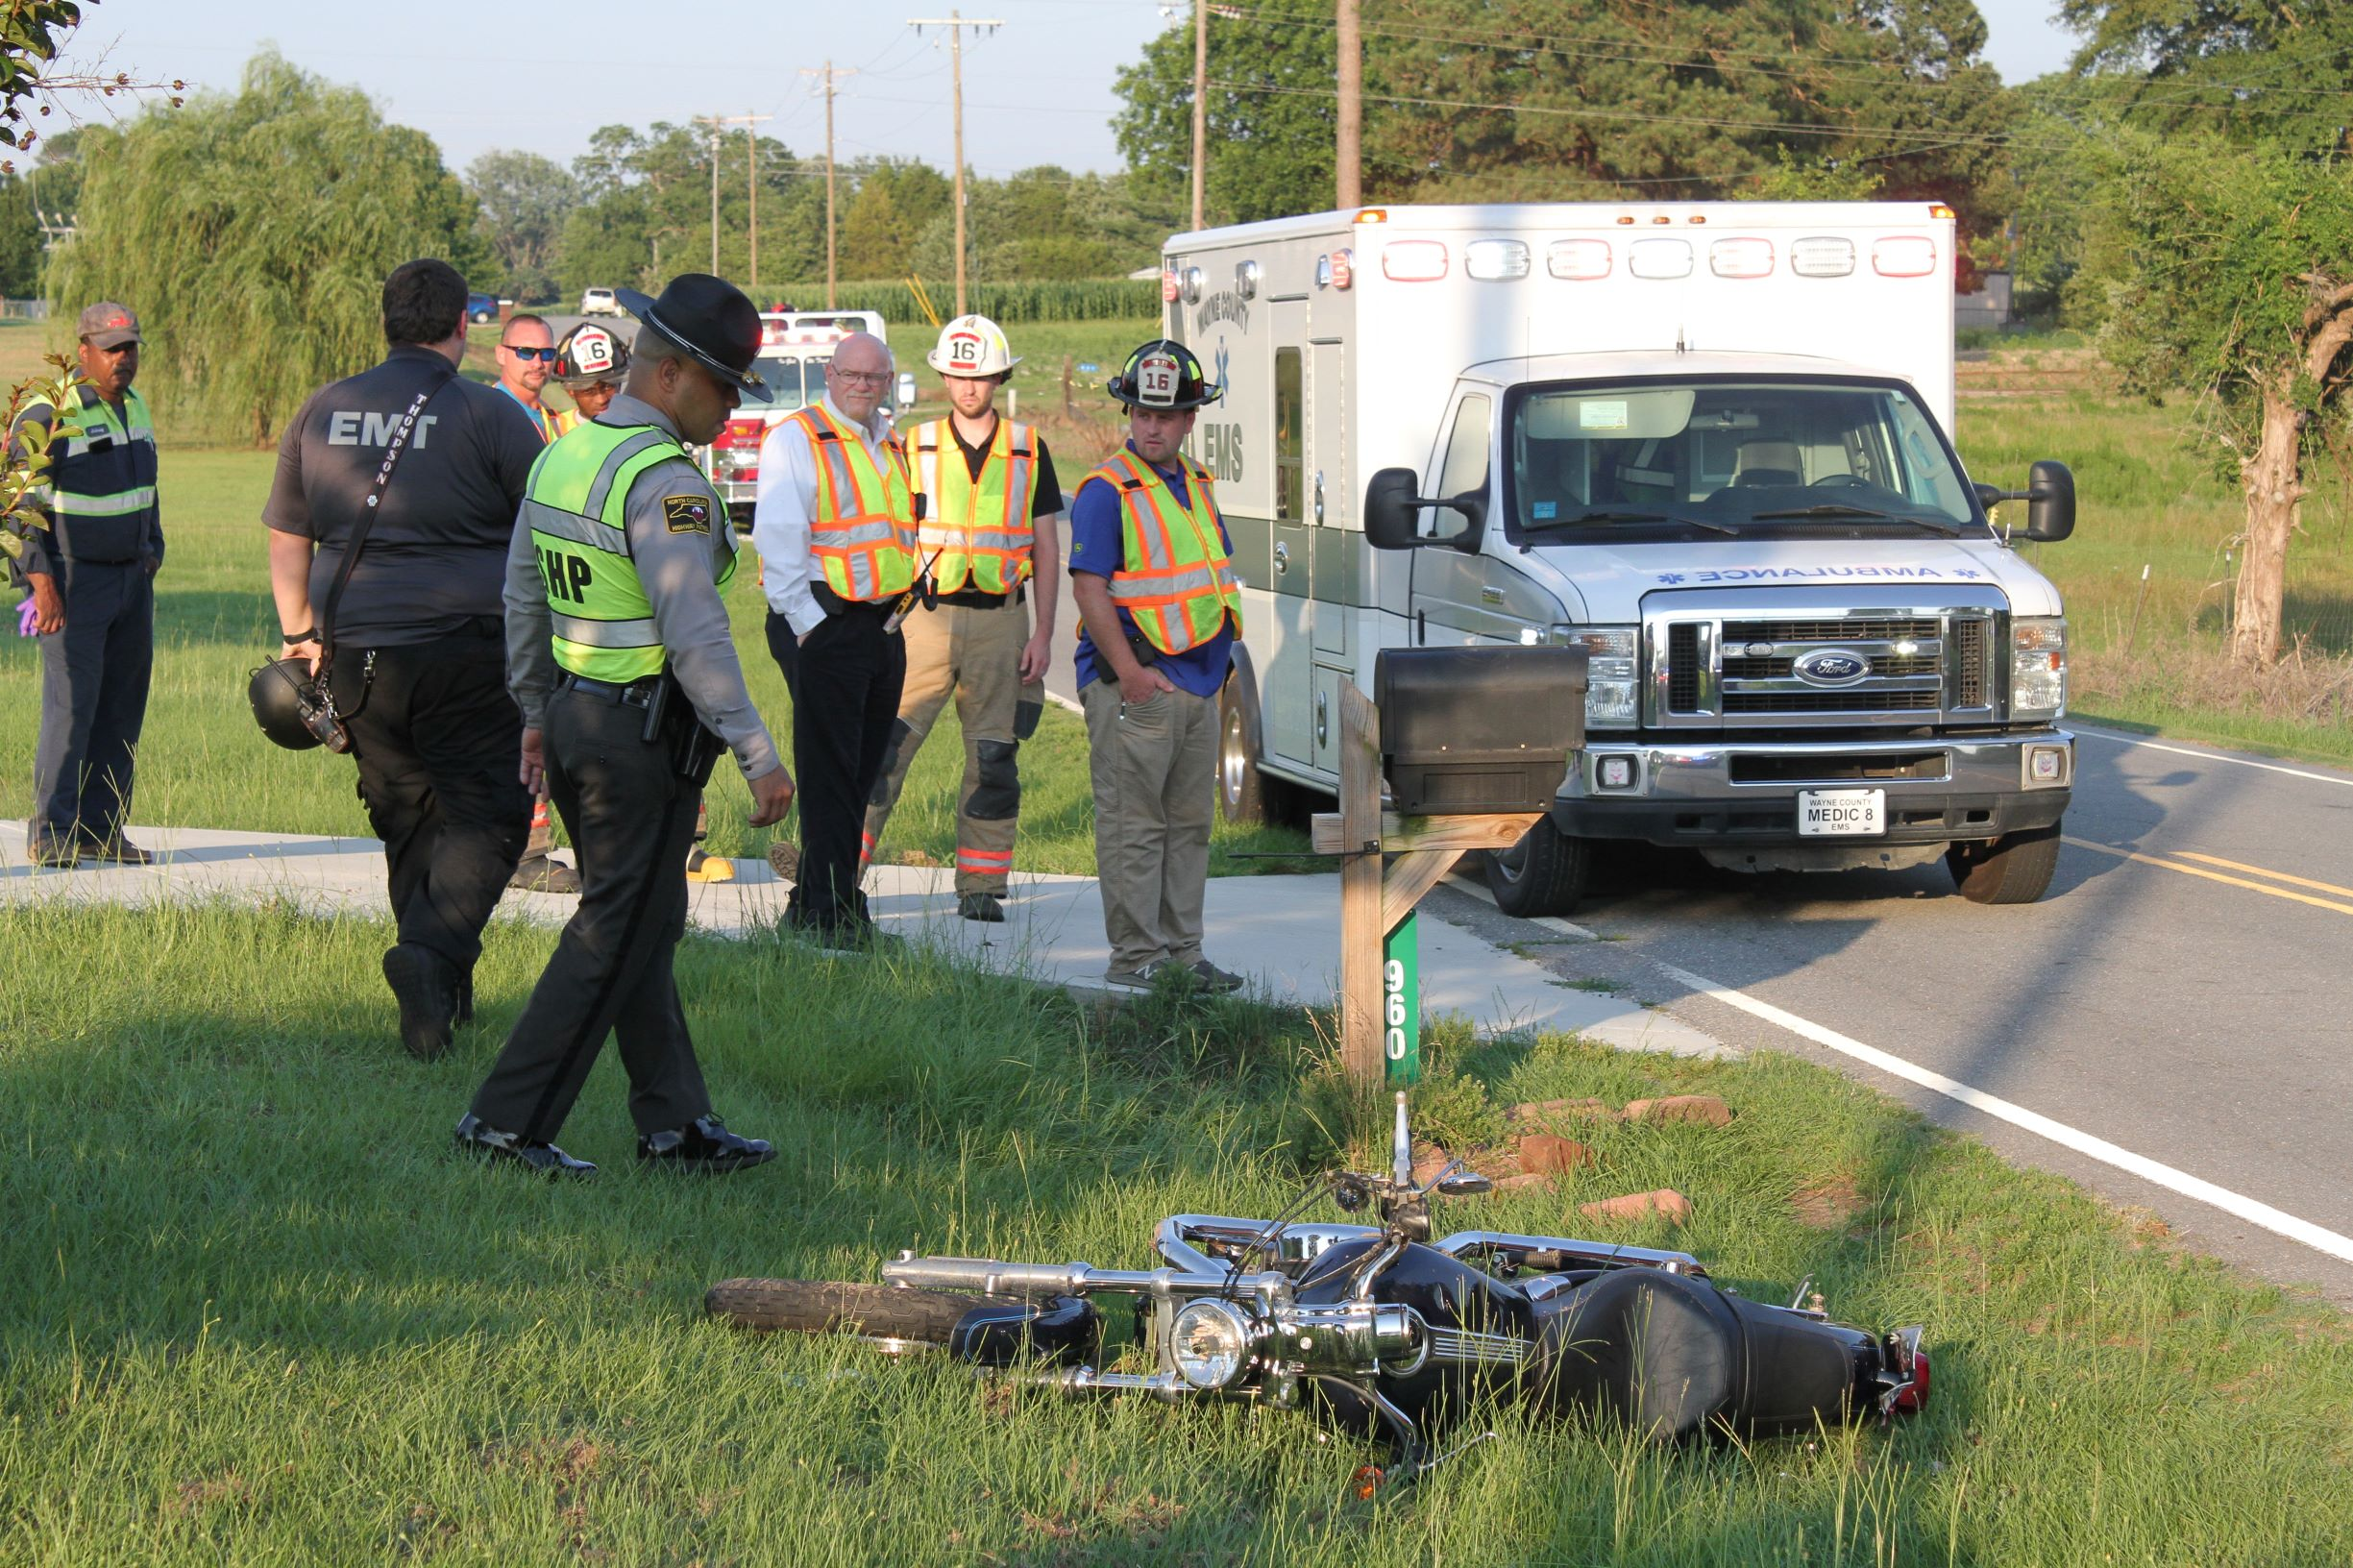 Motorcycle Runs Off Road North Of Mount Olive (PHOTOS)